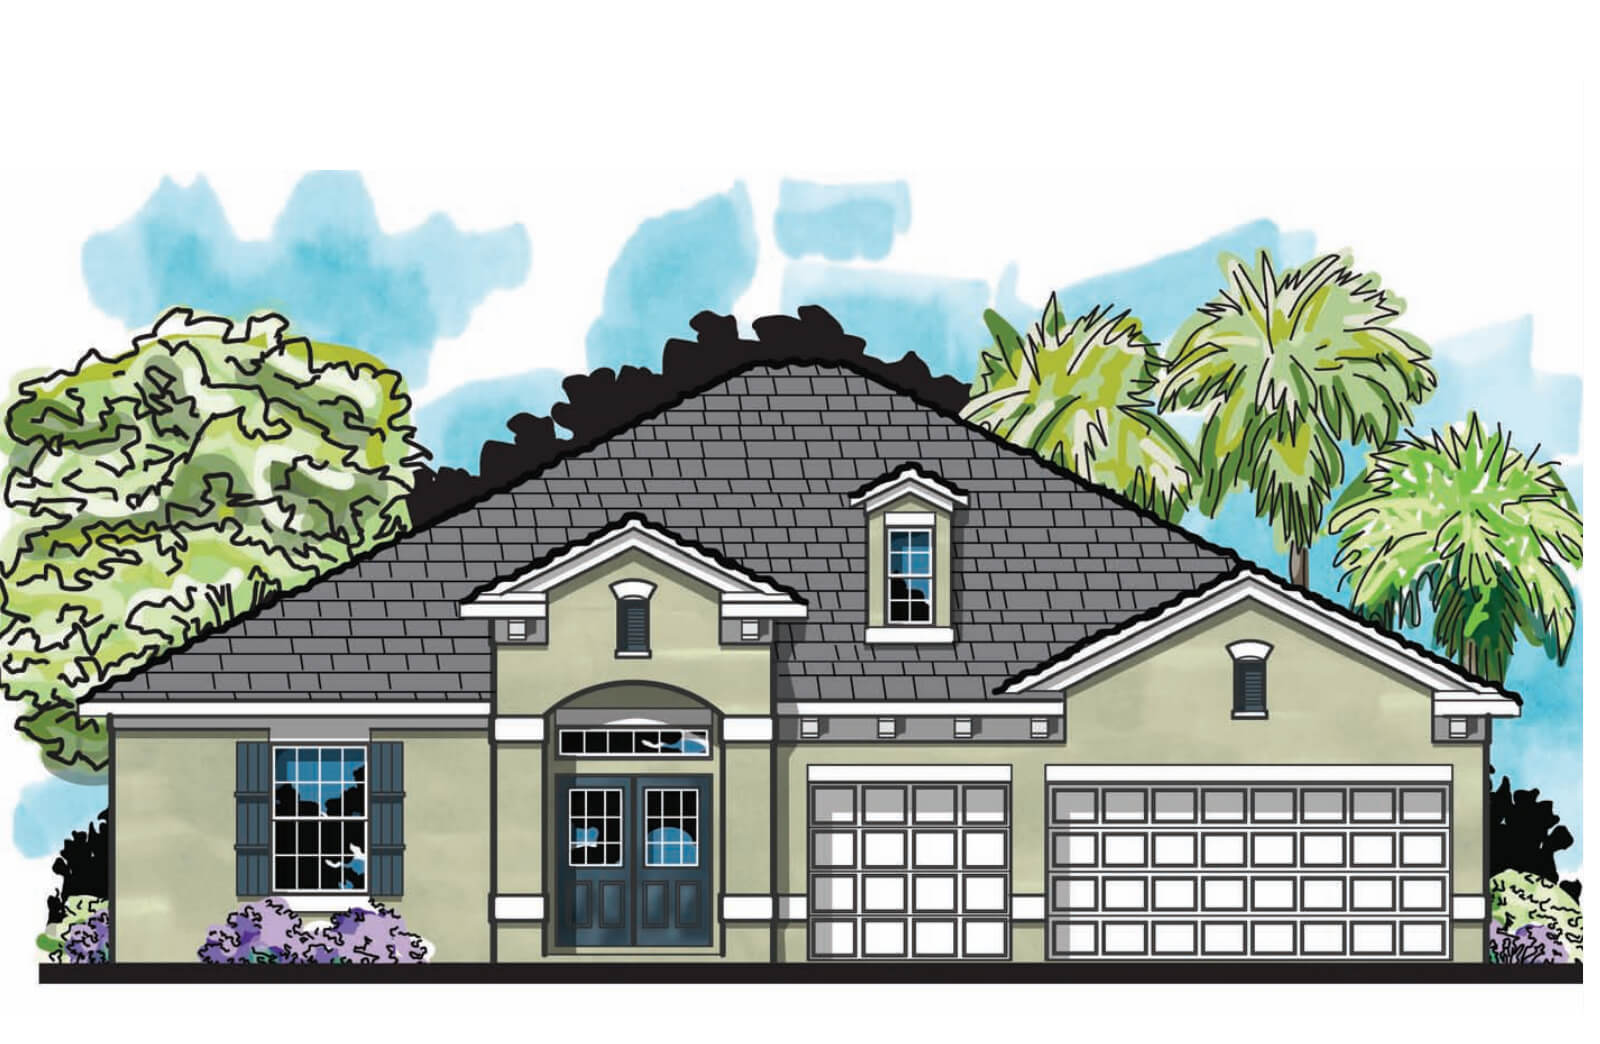 Land,2,501 SQ FT TO 3,000 SQ FT,1052